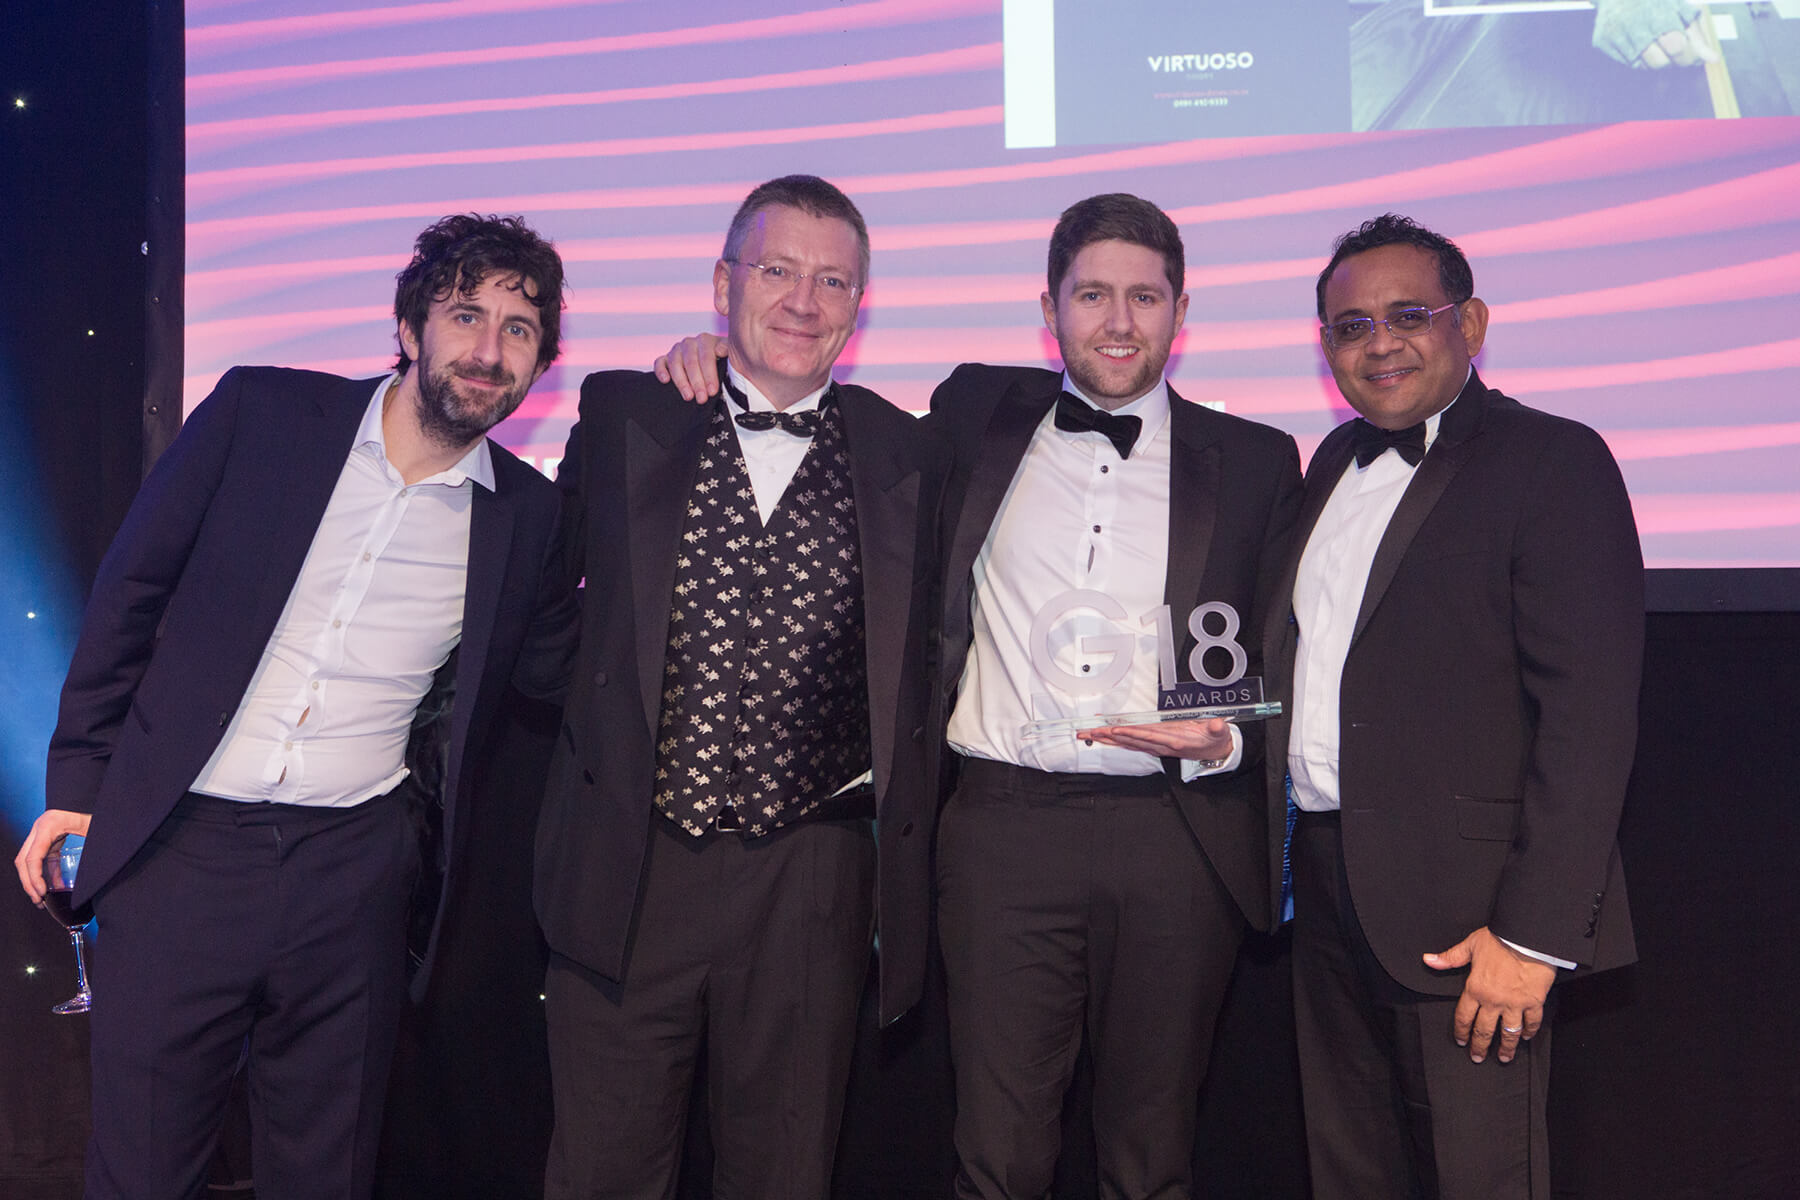 G18 Promotional Campaign of the Year